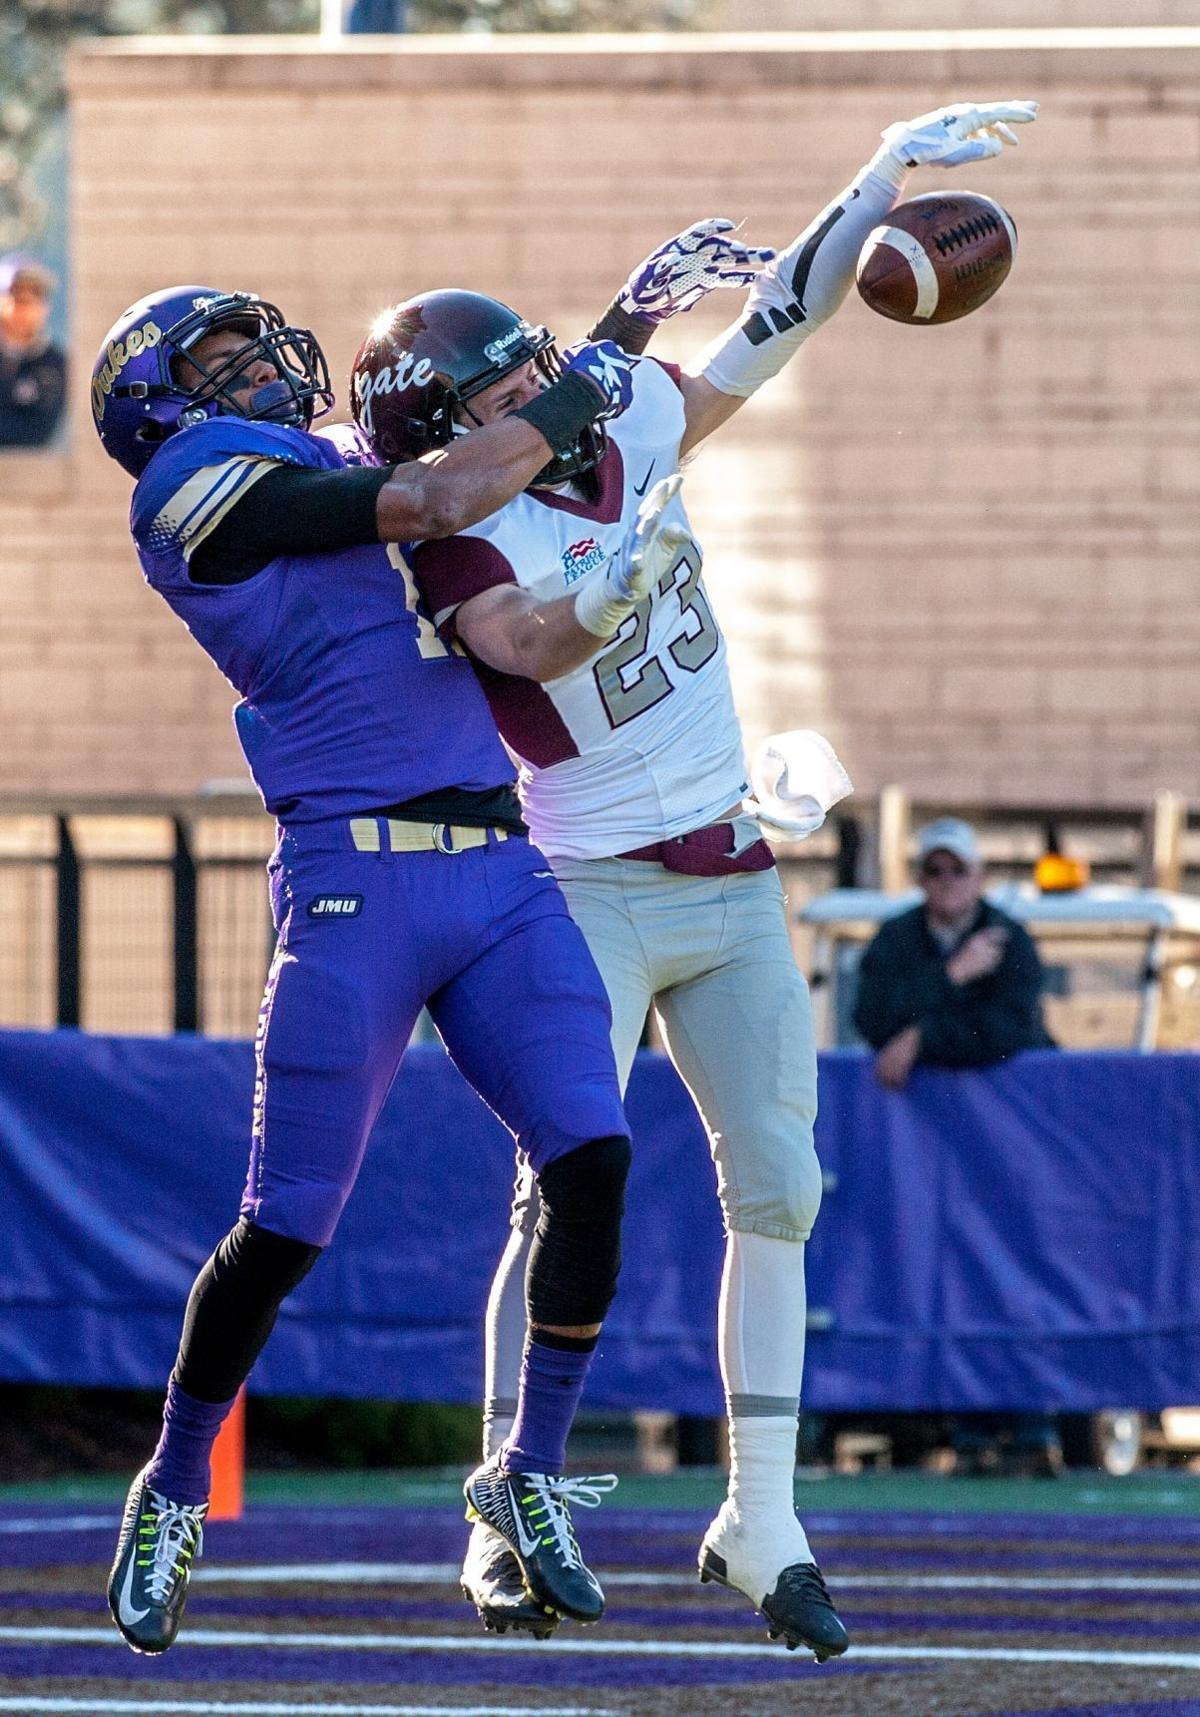 No 5 ranked jmu falls to colgate in fcs playoffs for James madison pets